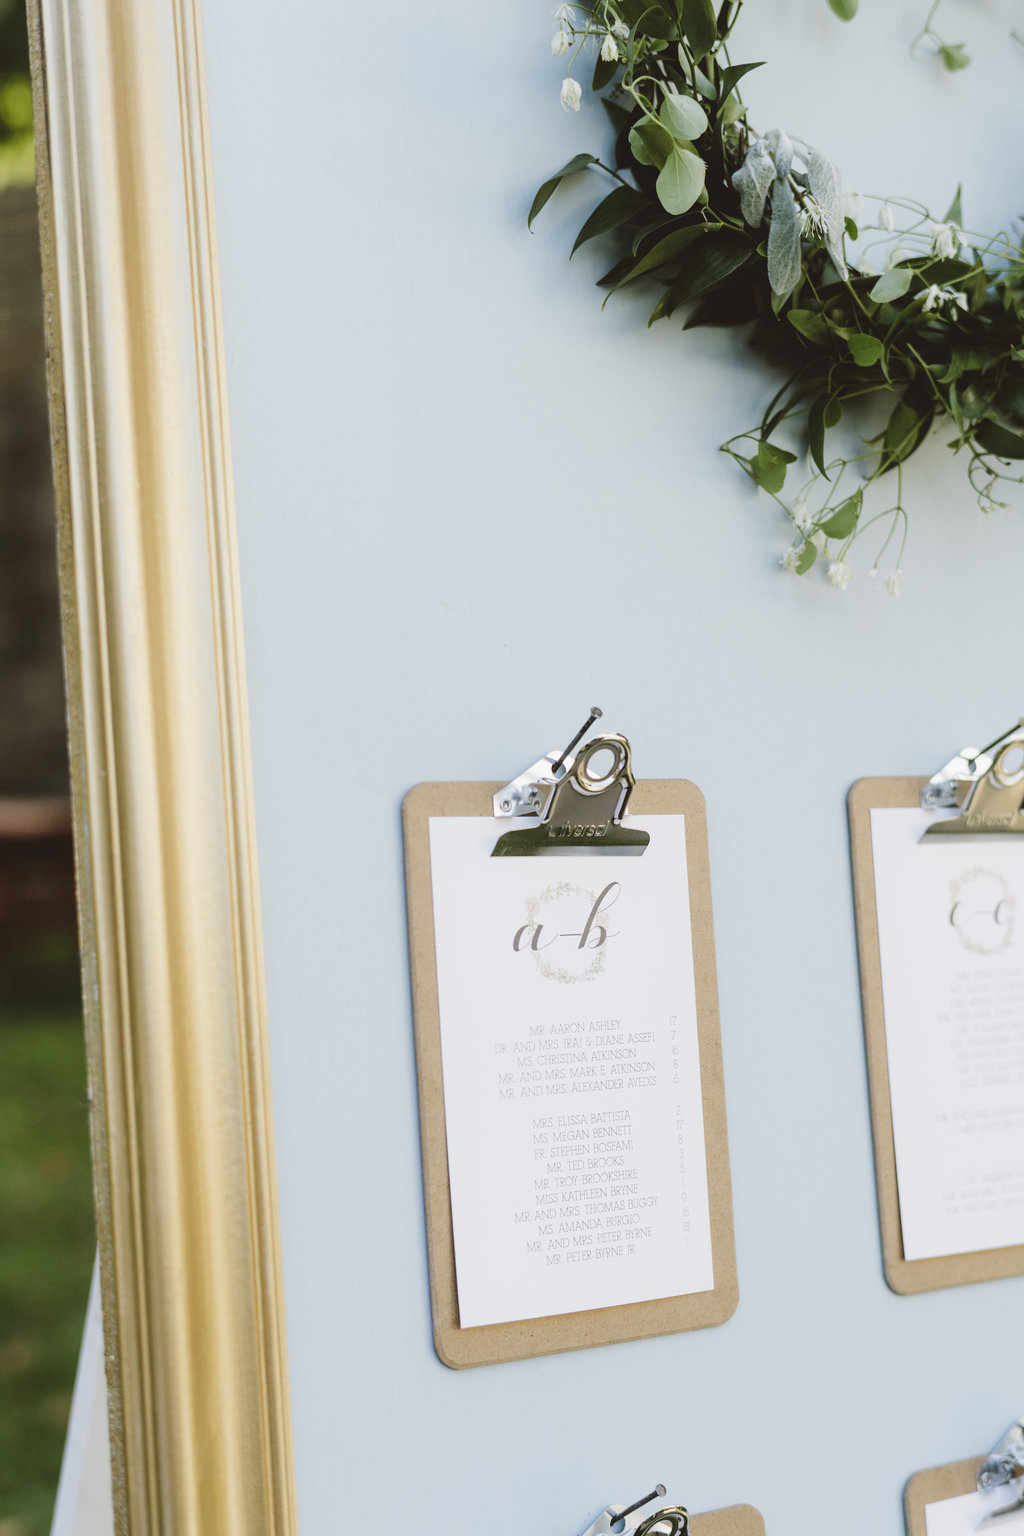 Coppola Creative Wedding Design _ Alicia King Photo30.jpg